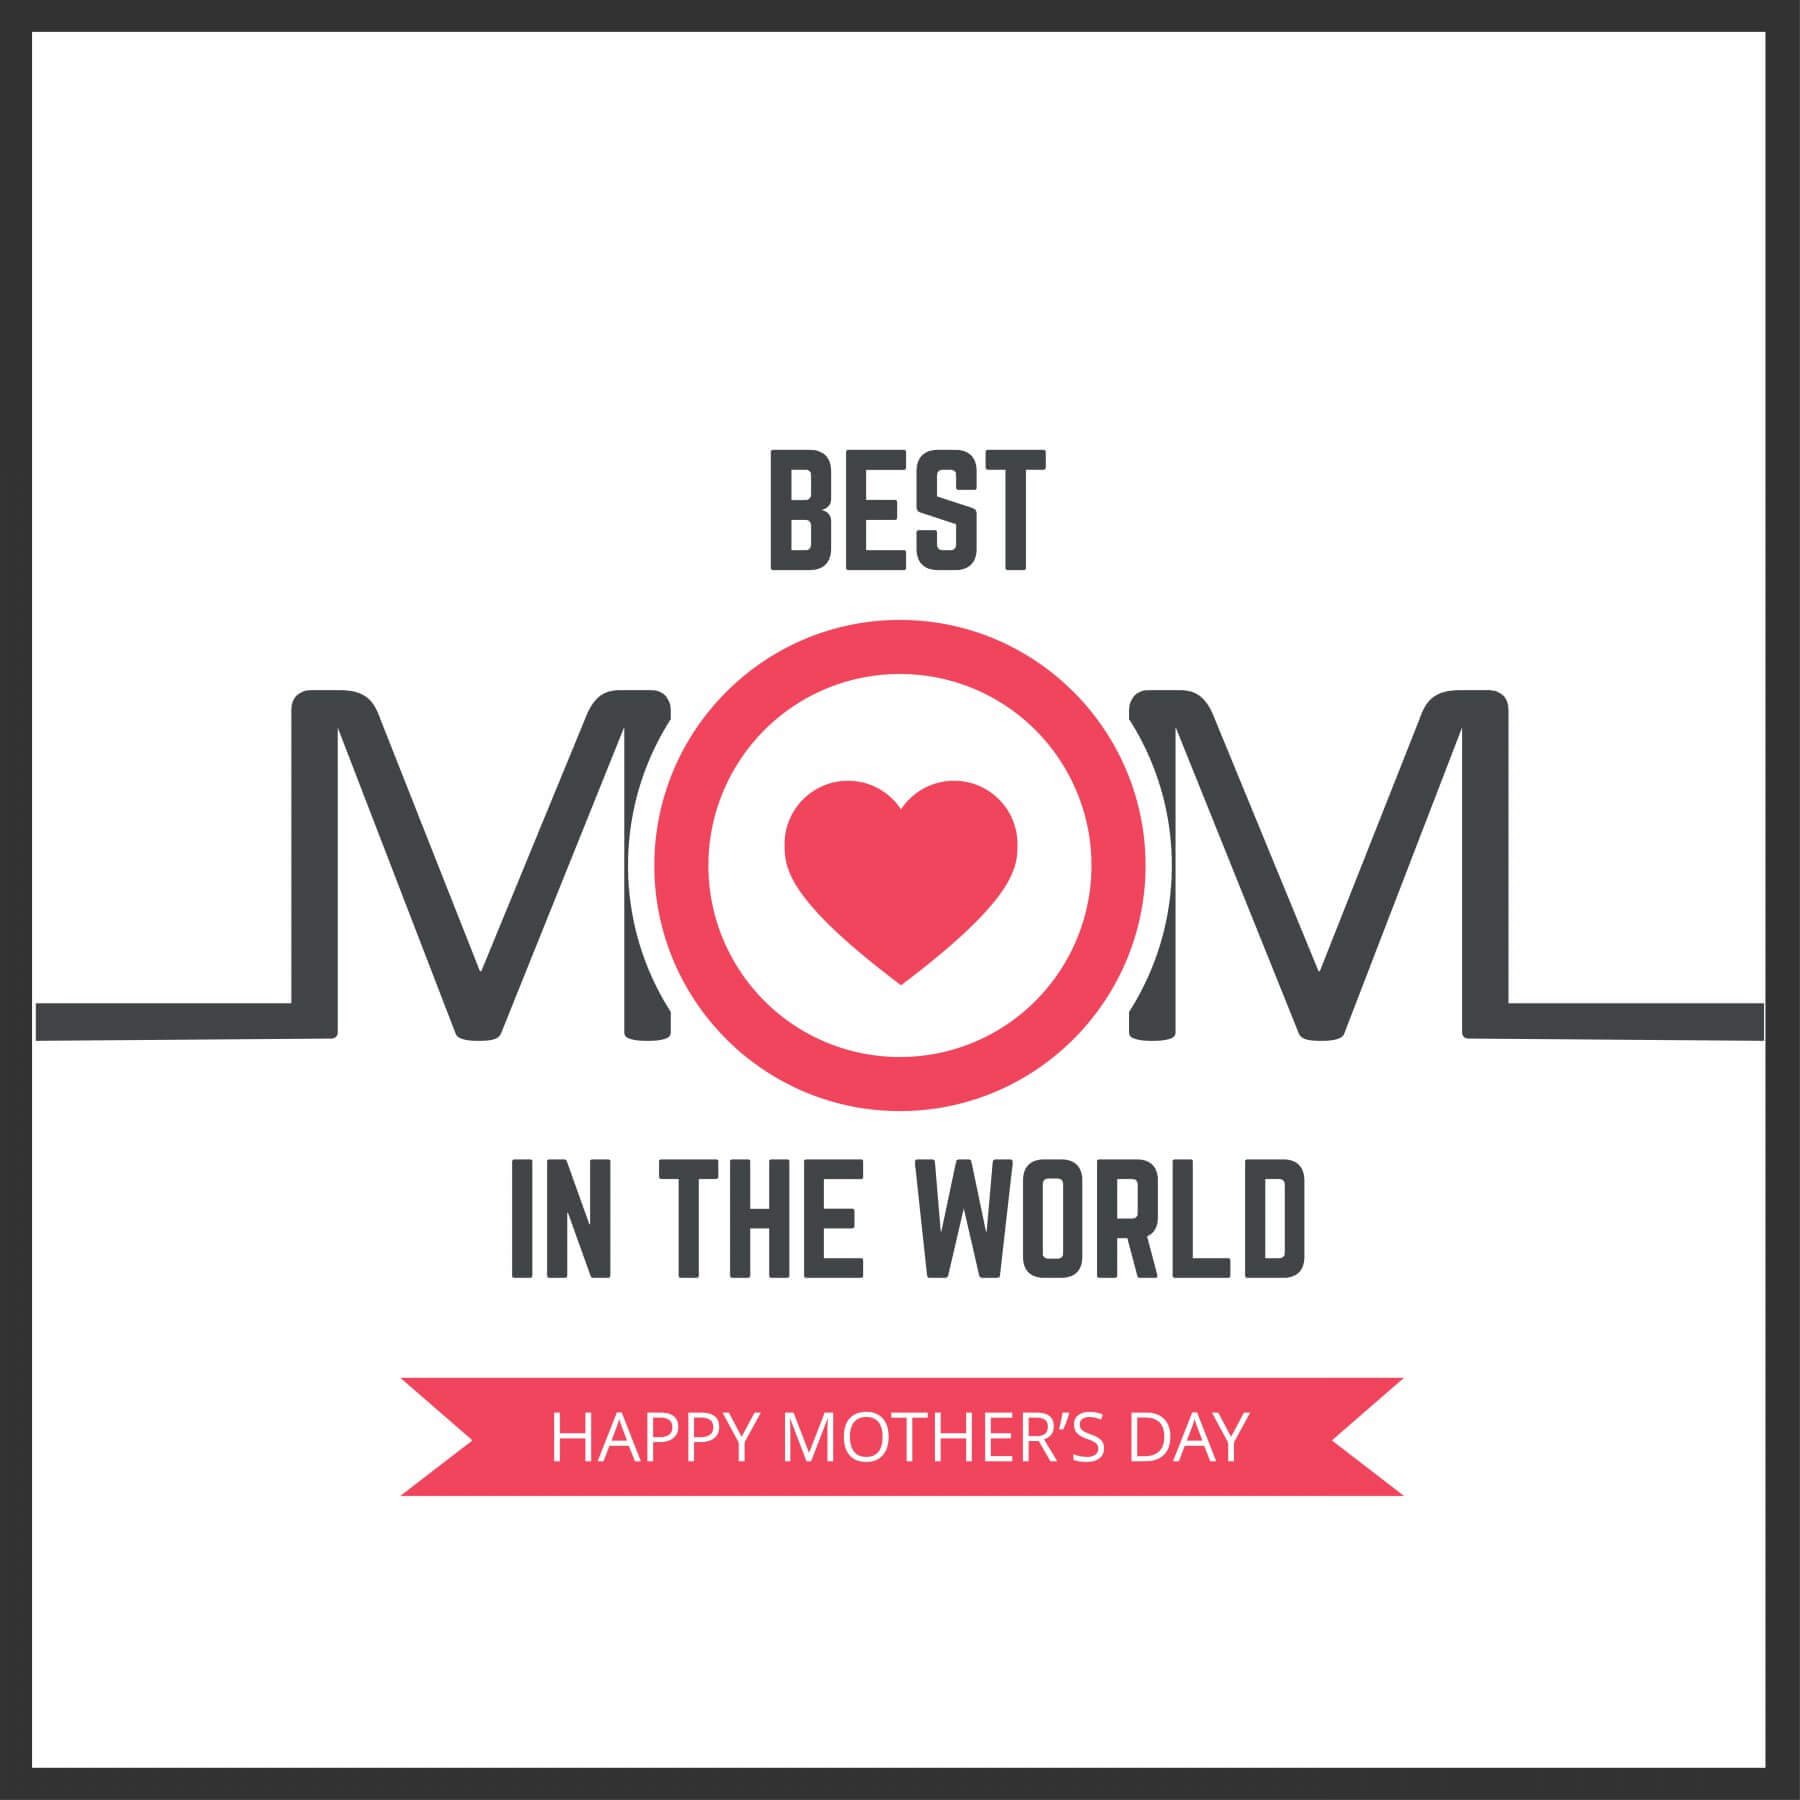 Happy Mother's Day, Mothers Day Cards, Best Mom, Mother's Day Images